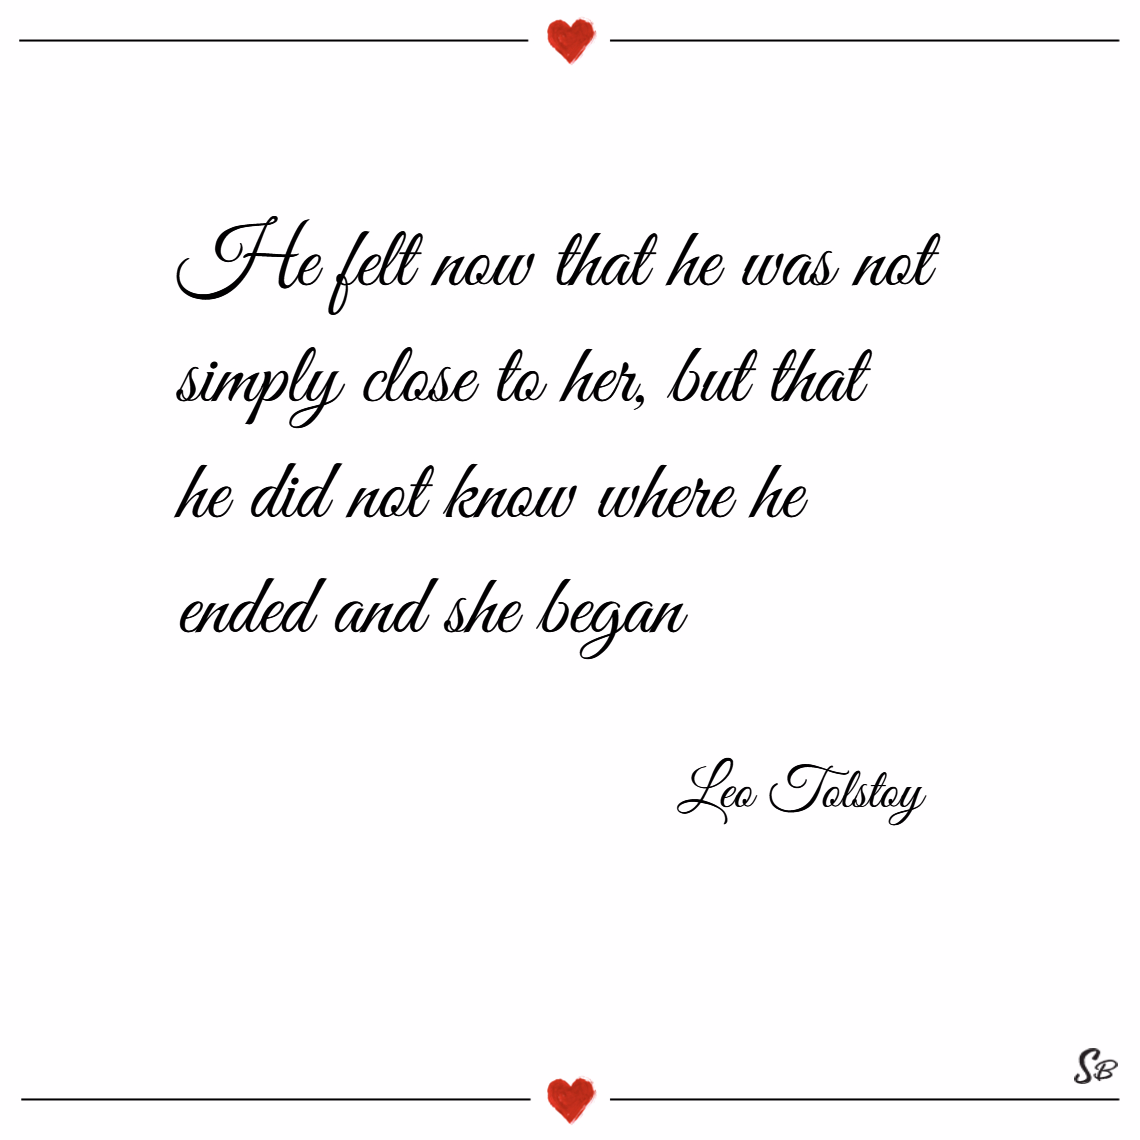 He felt now that he was not simply close to her, but that he did not know where he ended and she began. – leo tolstoy